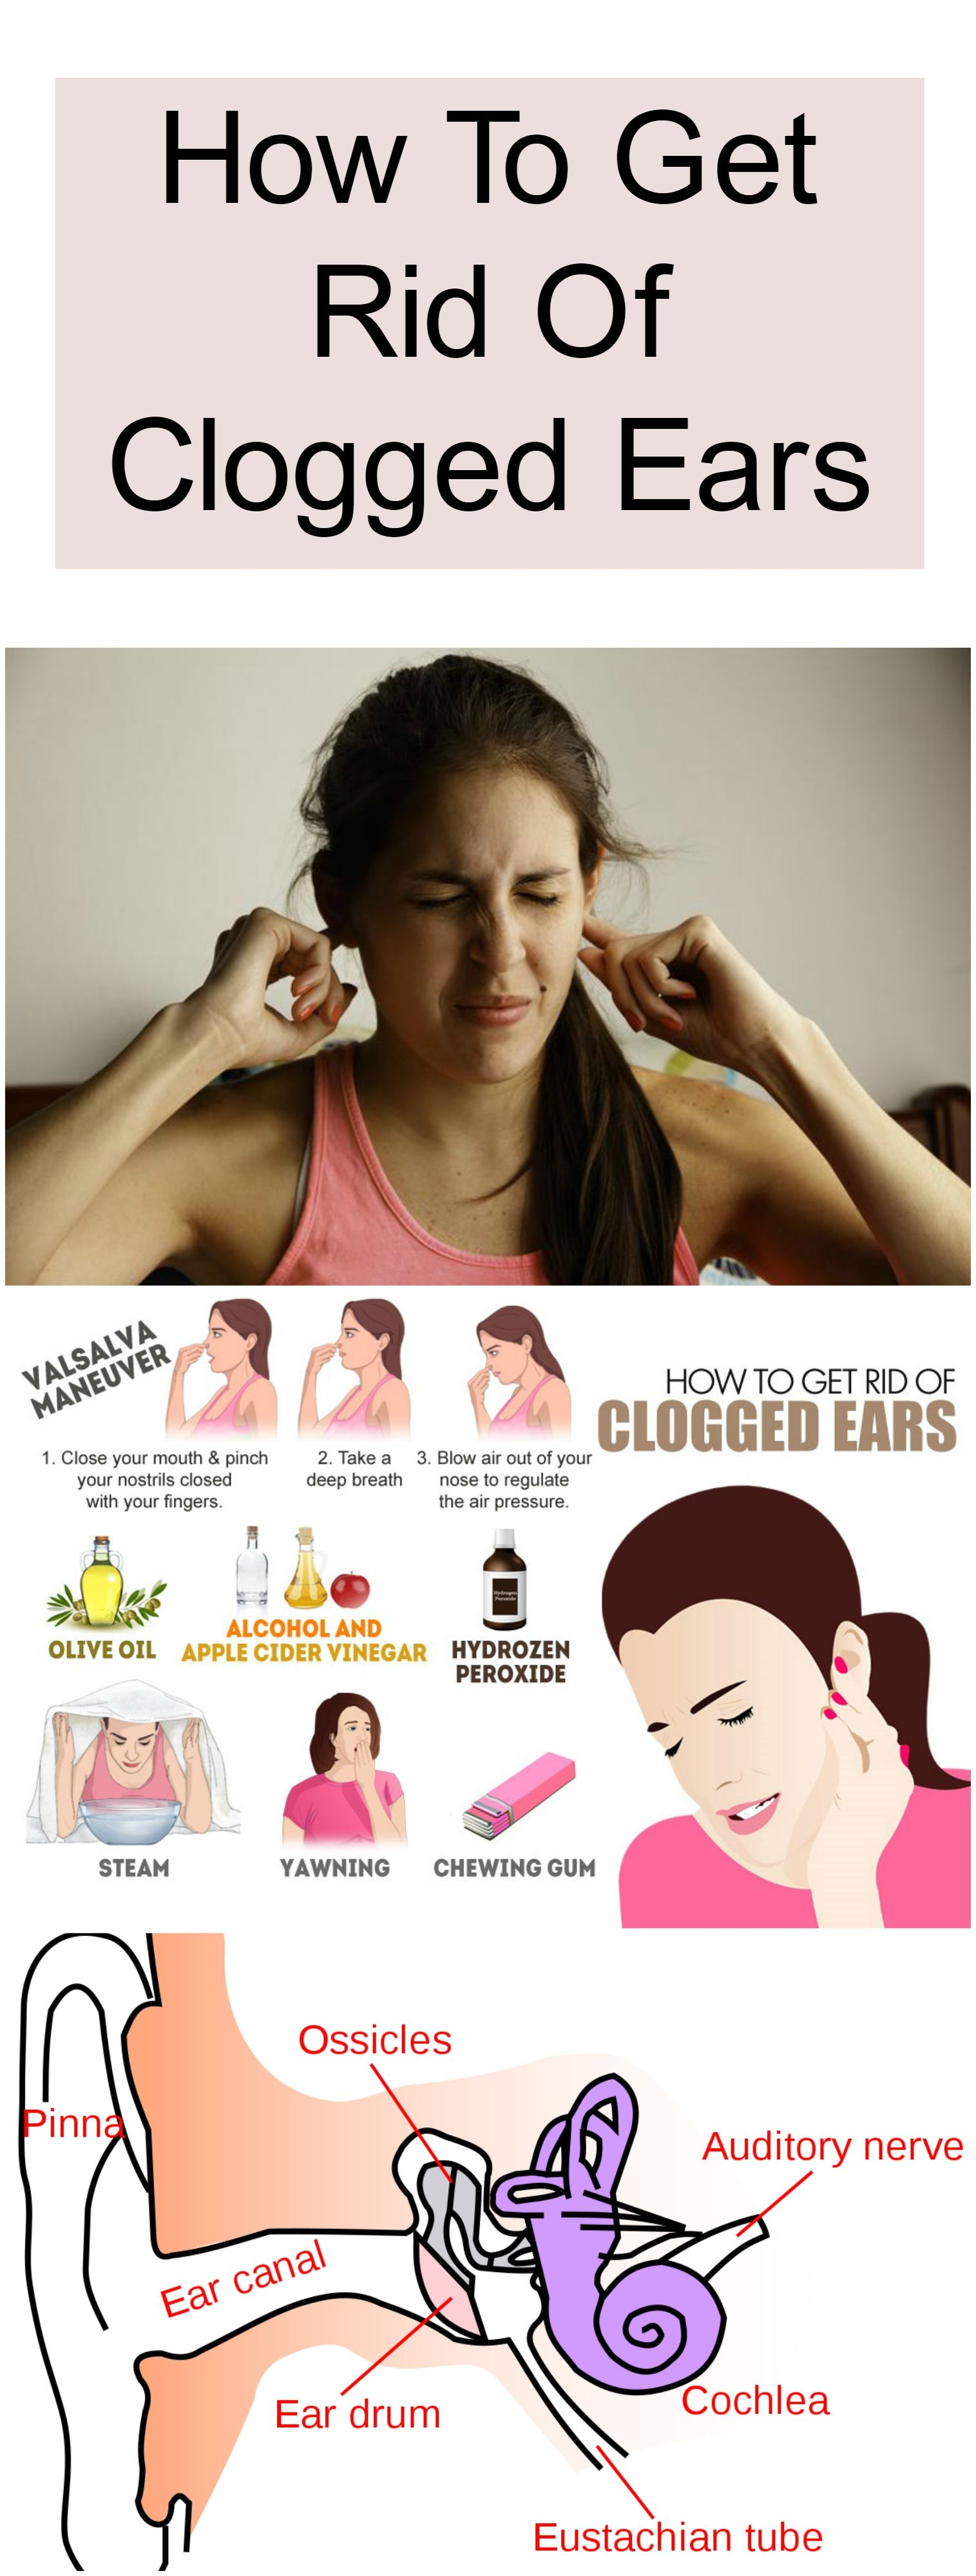 clogged ears get rid healthy tips Clogged ears